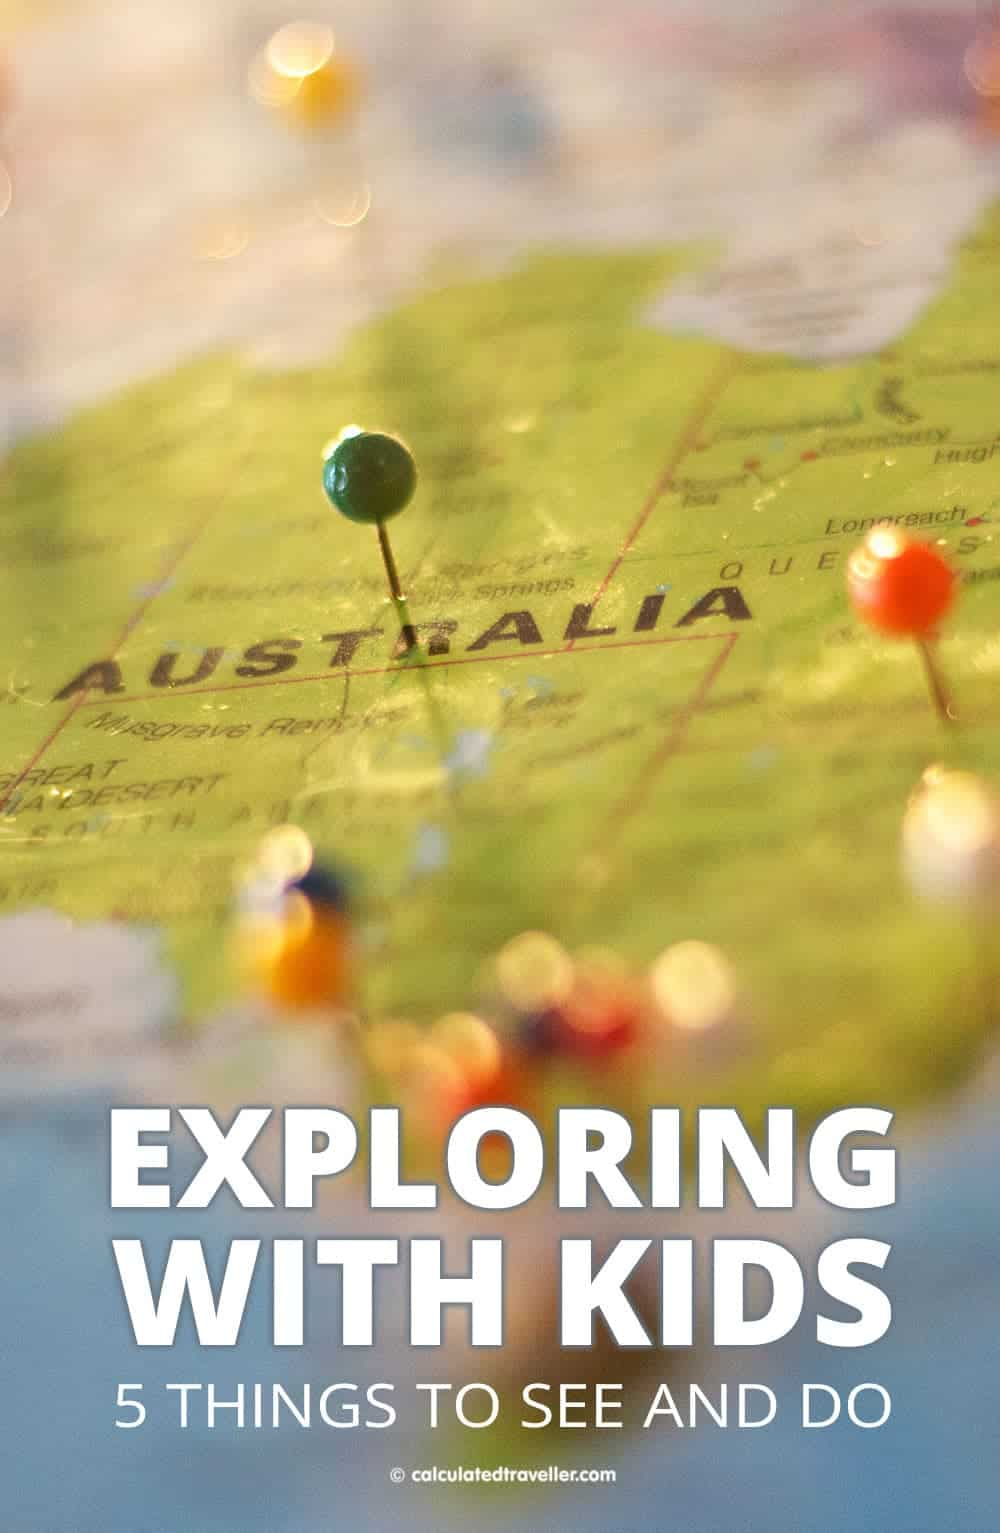 Exploring Australia with Kids - Five places to see and things to do   Calculated Traveller   #FamilyTravel #travel #Australia #kids